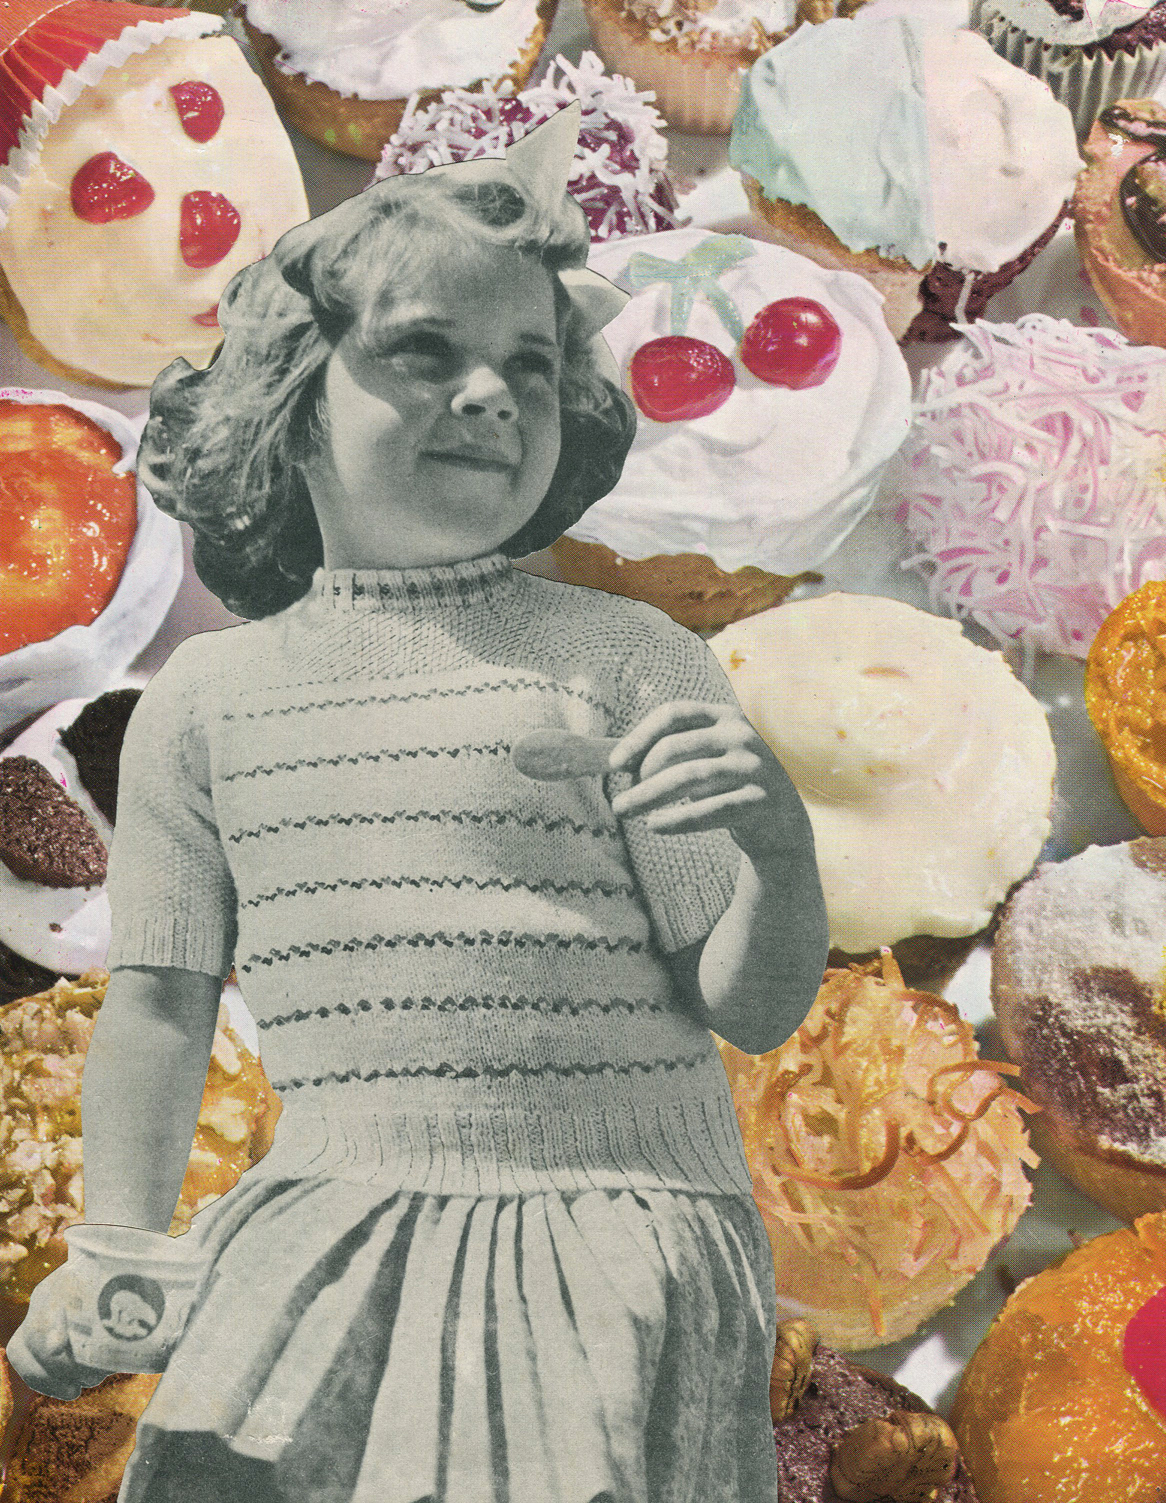 Trim With Coloured Sugar #4, 2015, collage, found paper